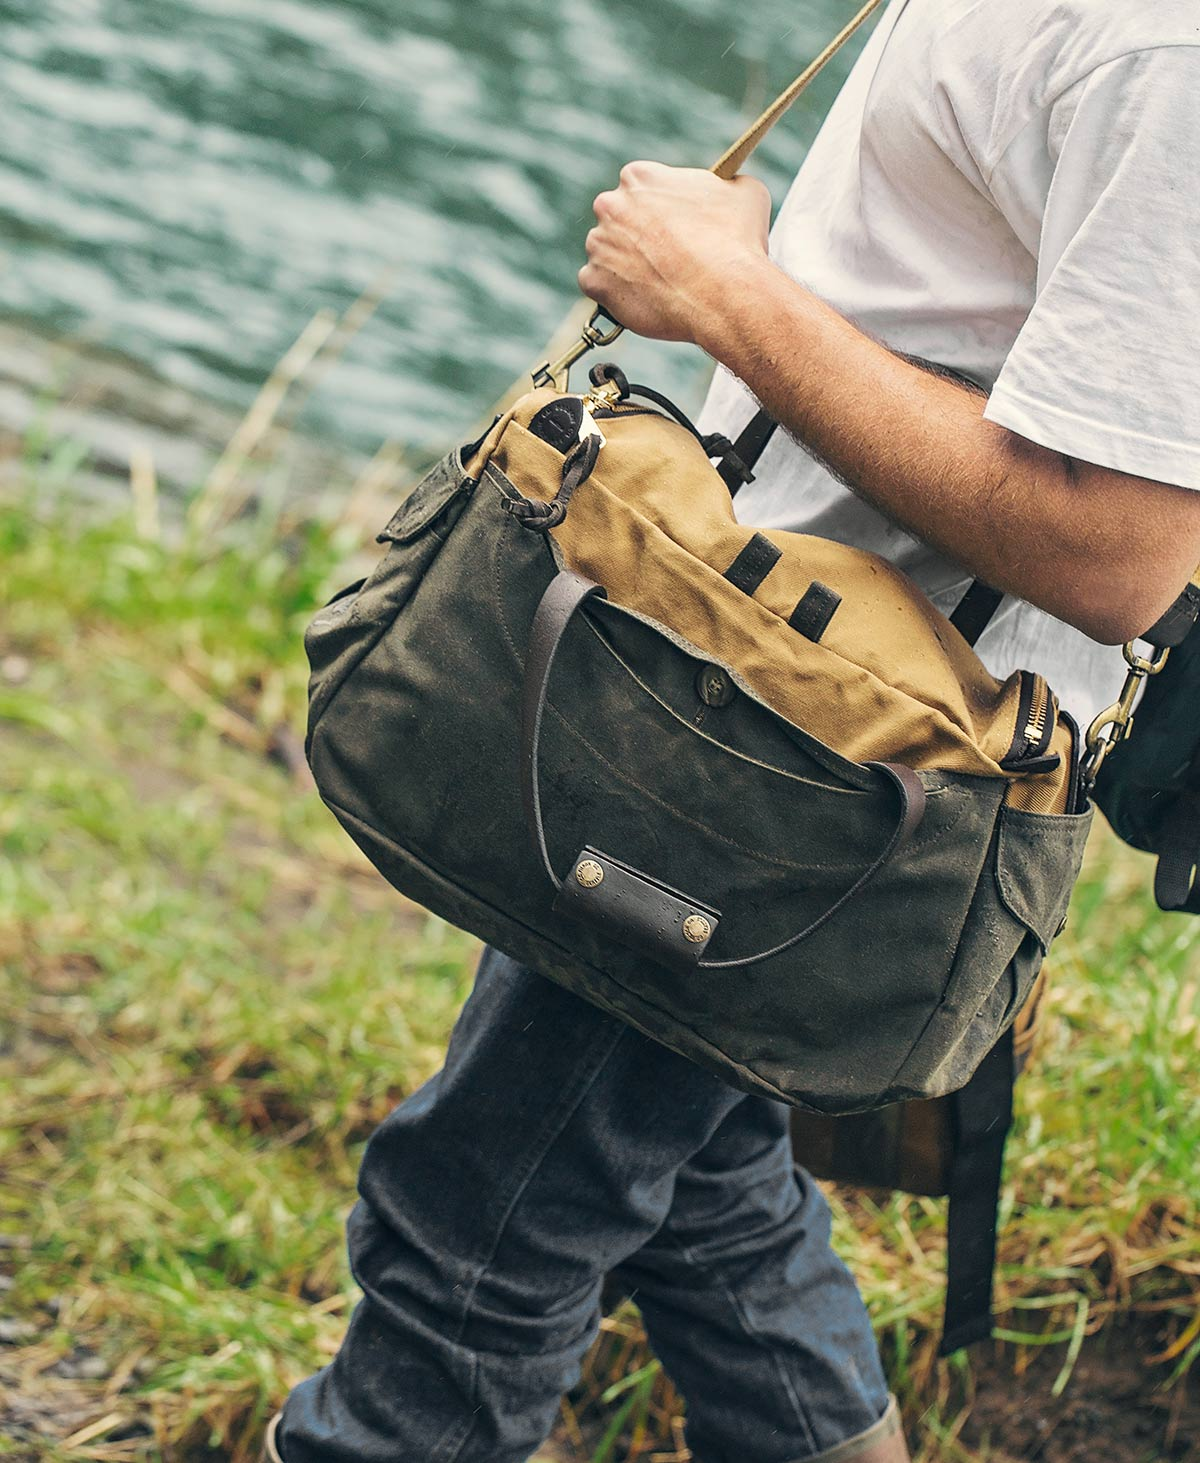 Filson Heritage Sportsman Bag   perfect bag with style and character ... de0eeca908